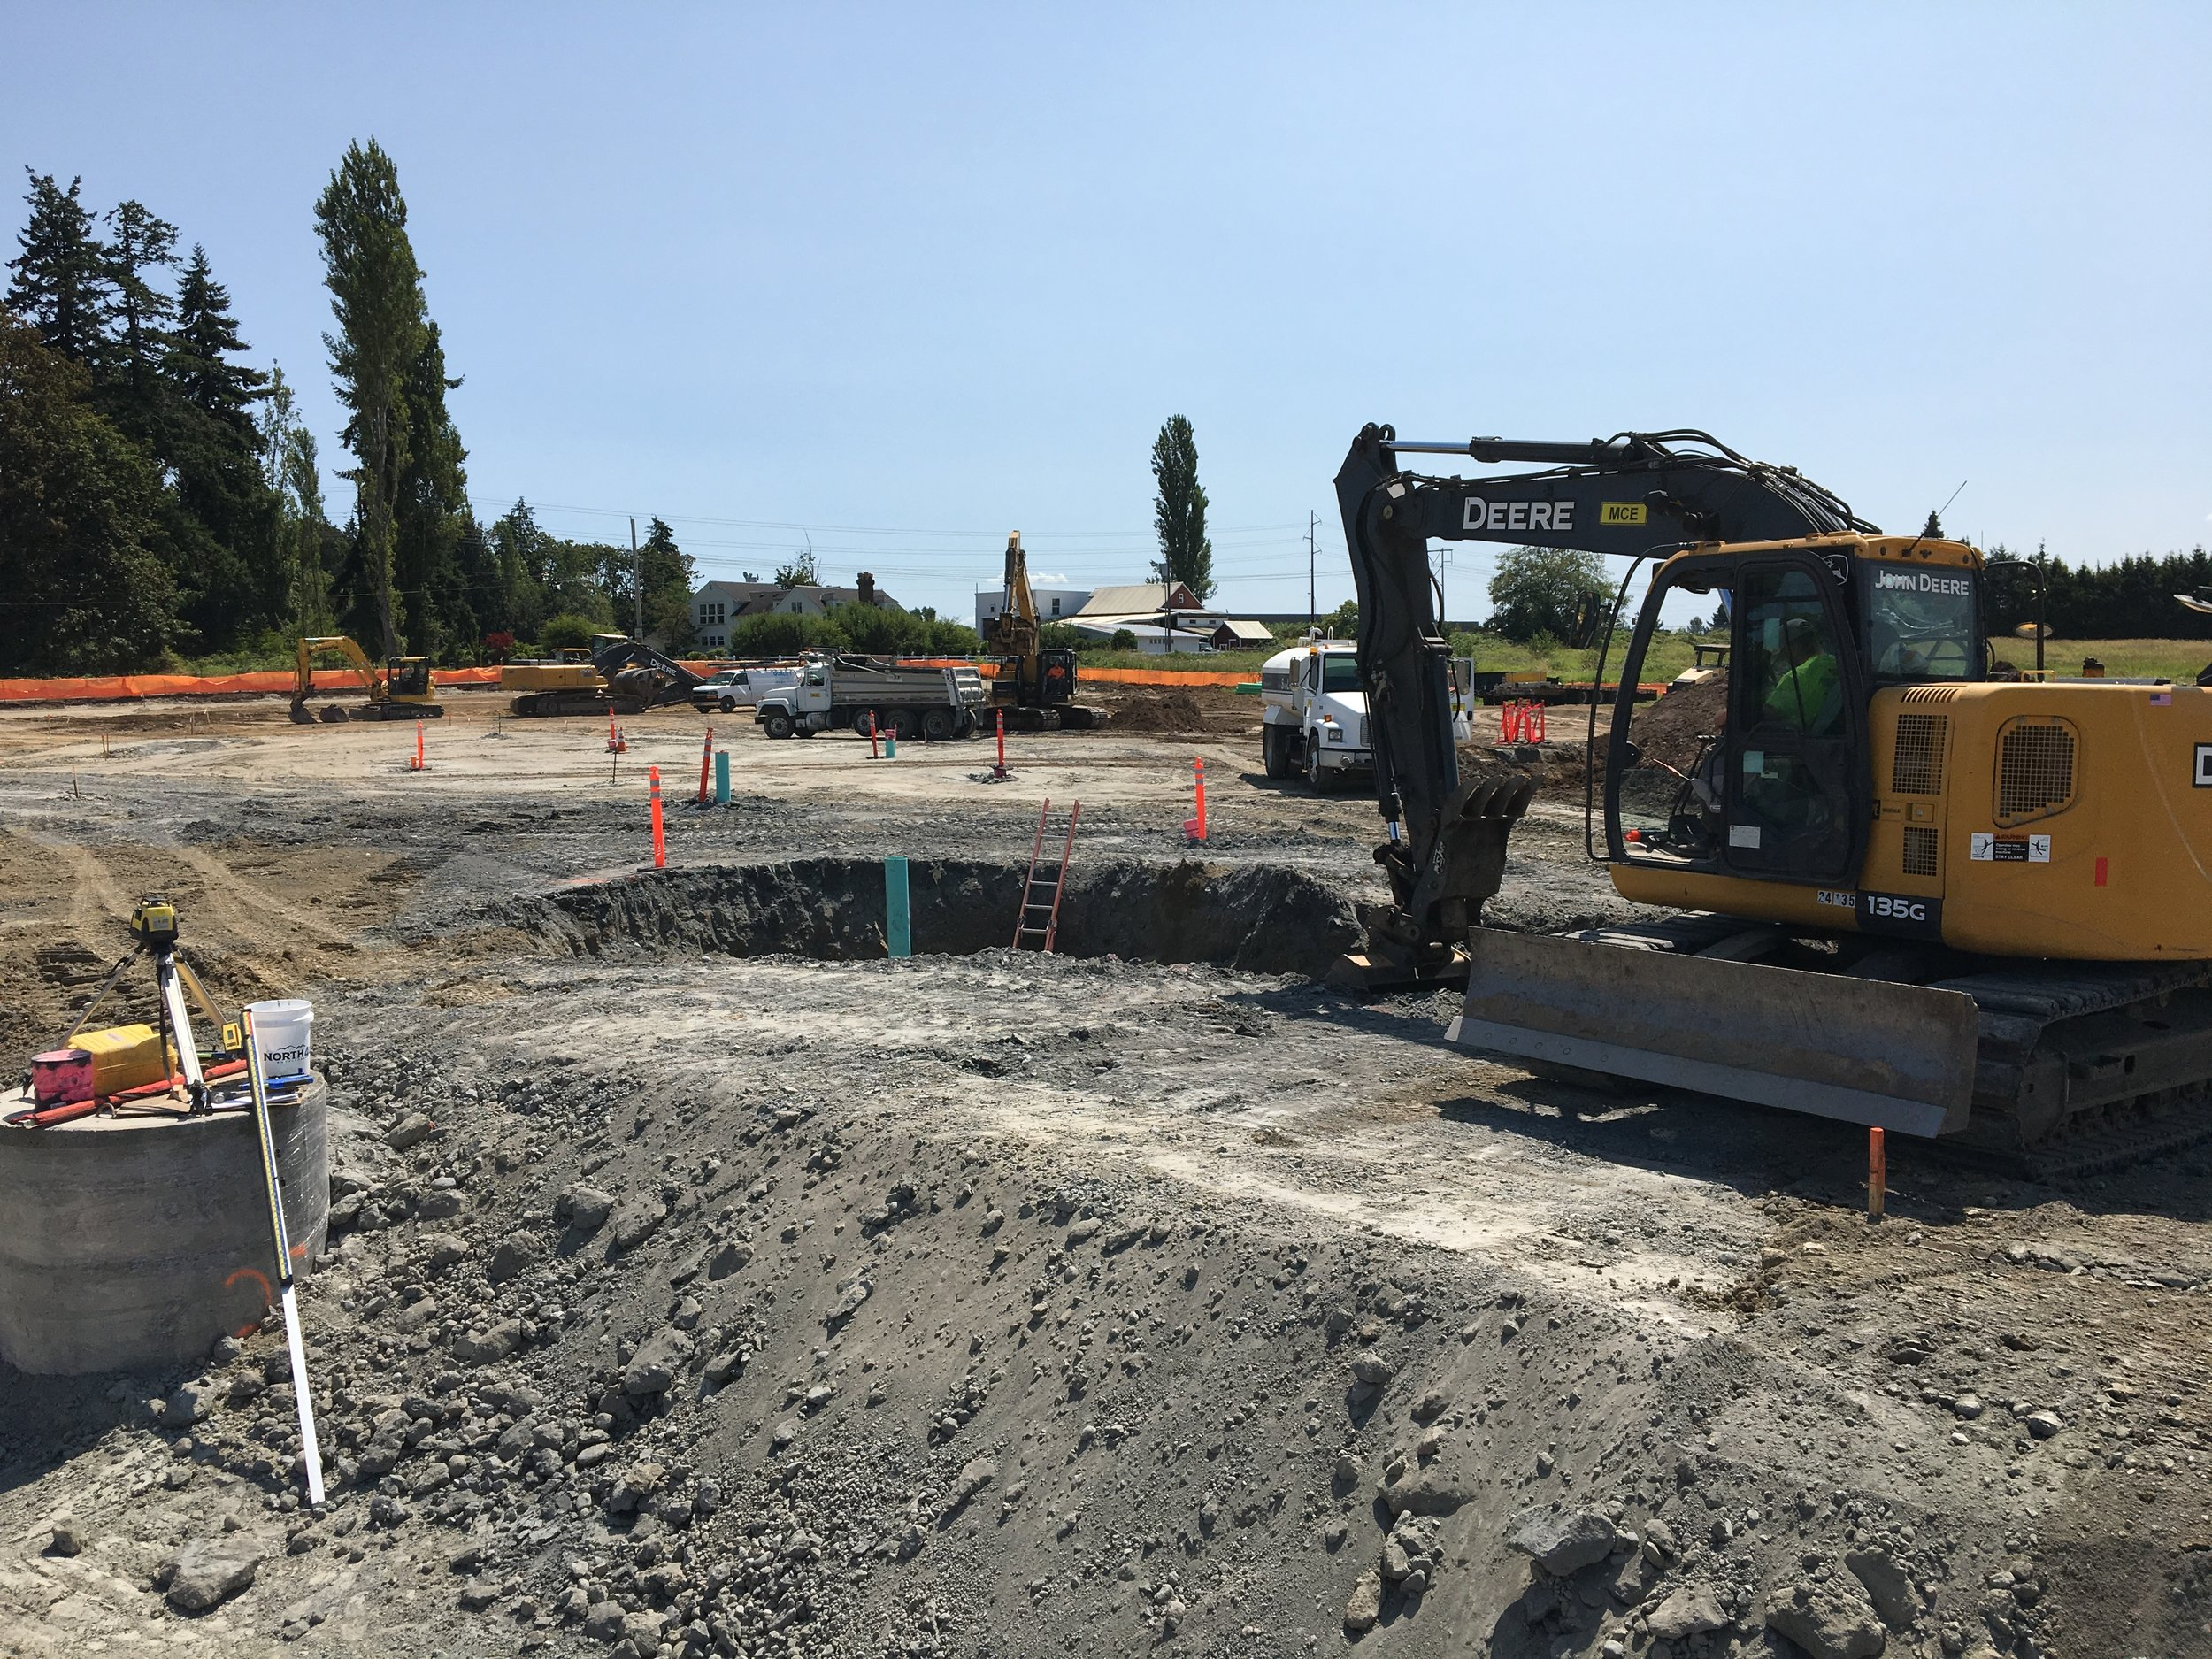 It's always exciting breaking ground on a new park 🚜 We just got started on the new Lake Stevens, Washington skatepark 💪🏽